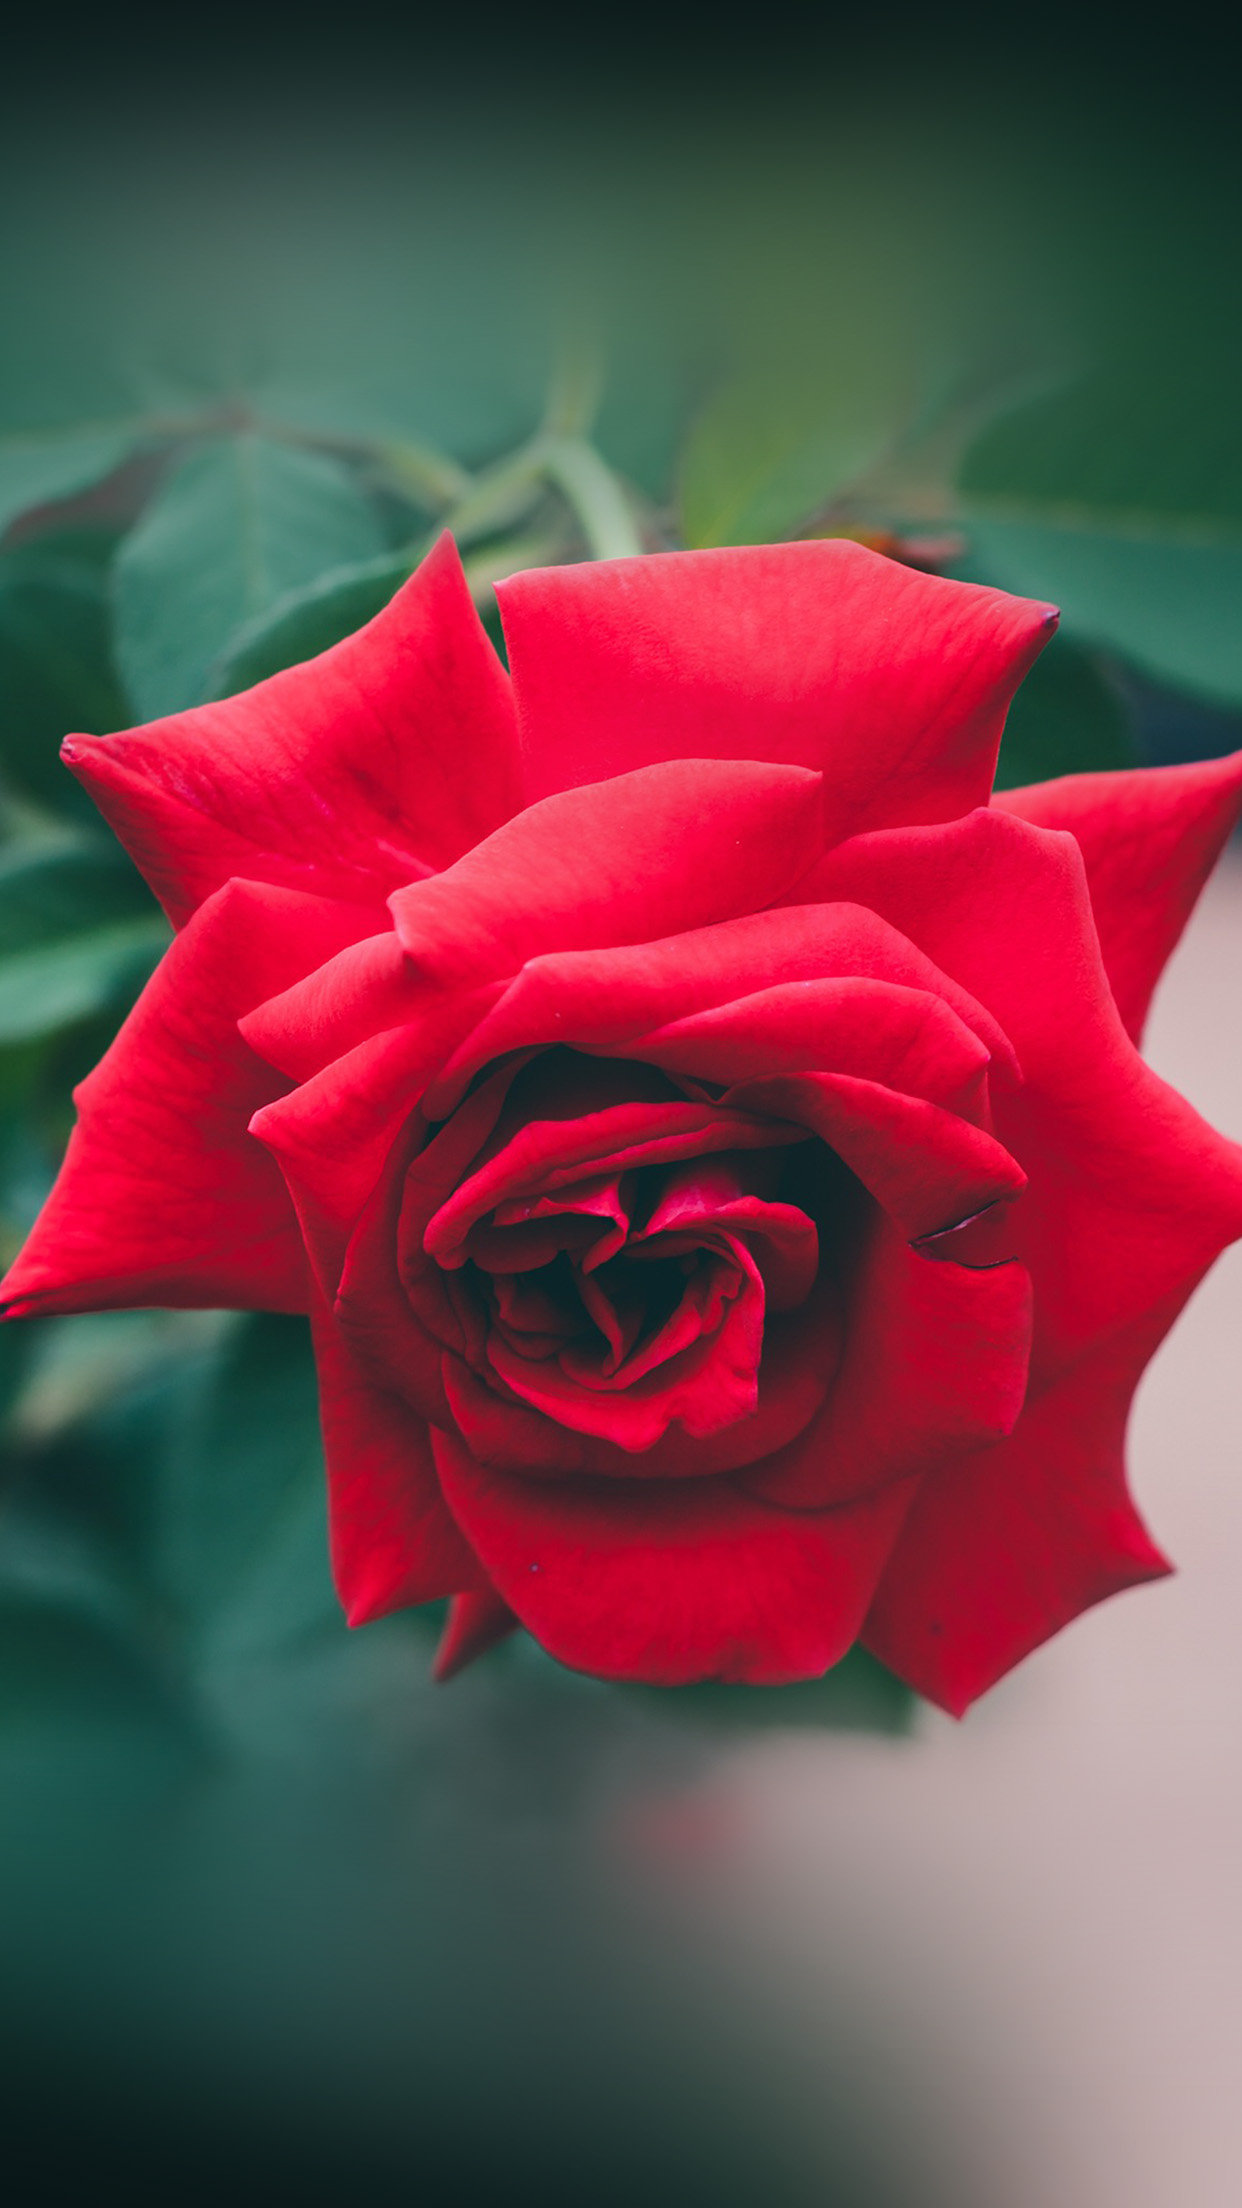 Red Rose Nature Flower Wood Love Valentine Android Wallpaper